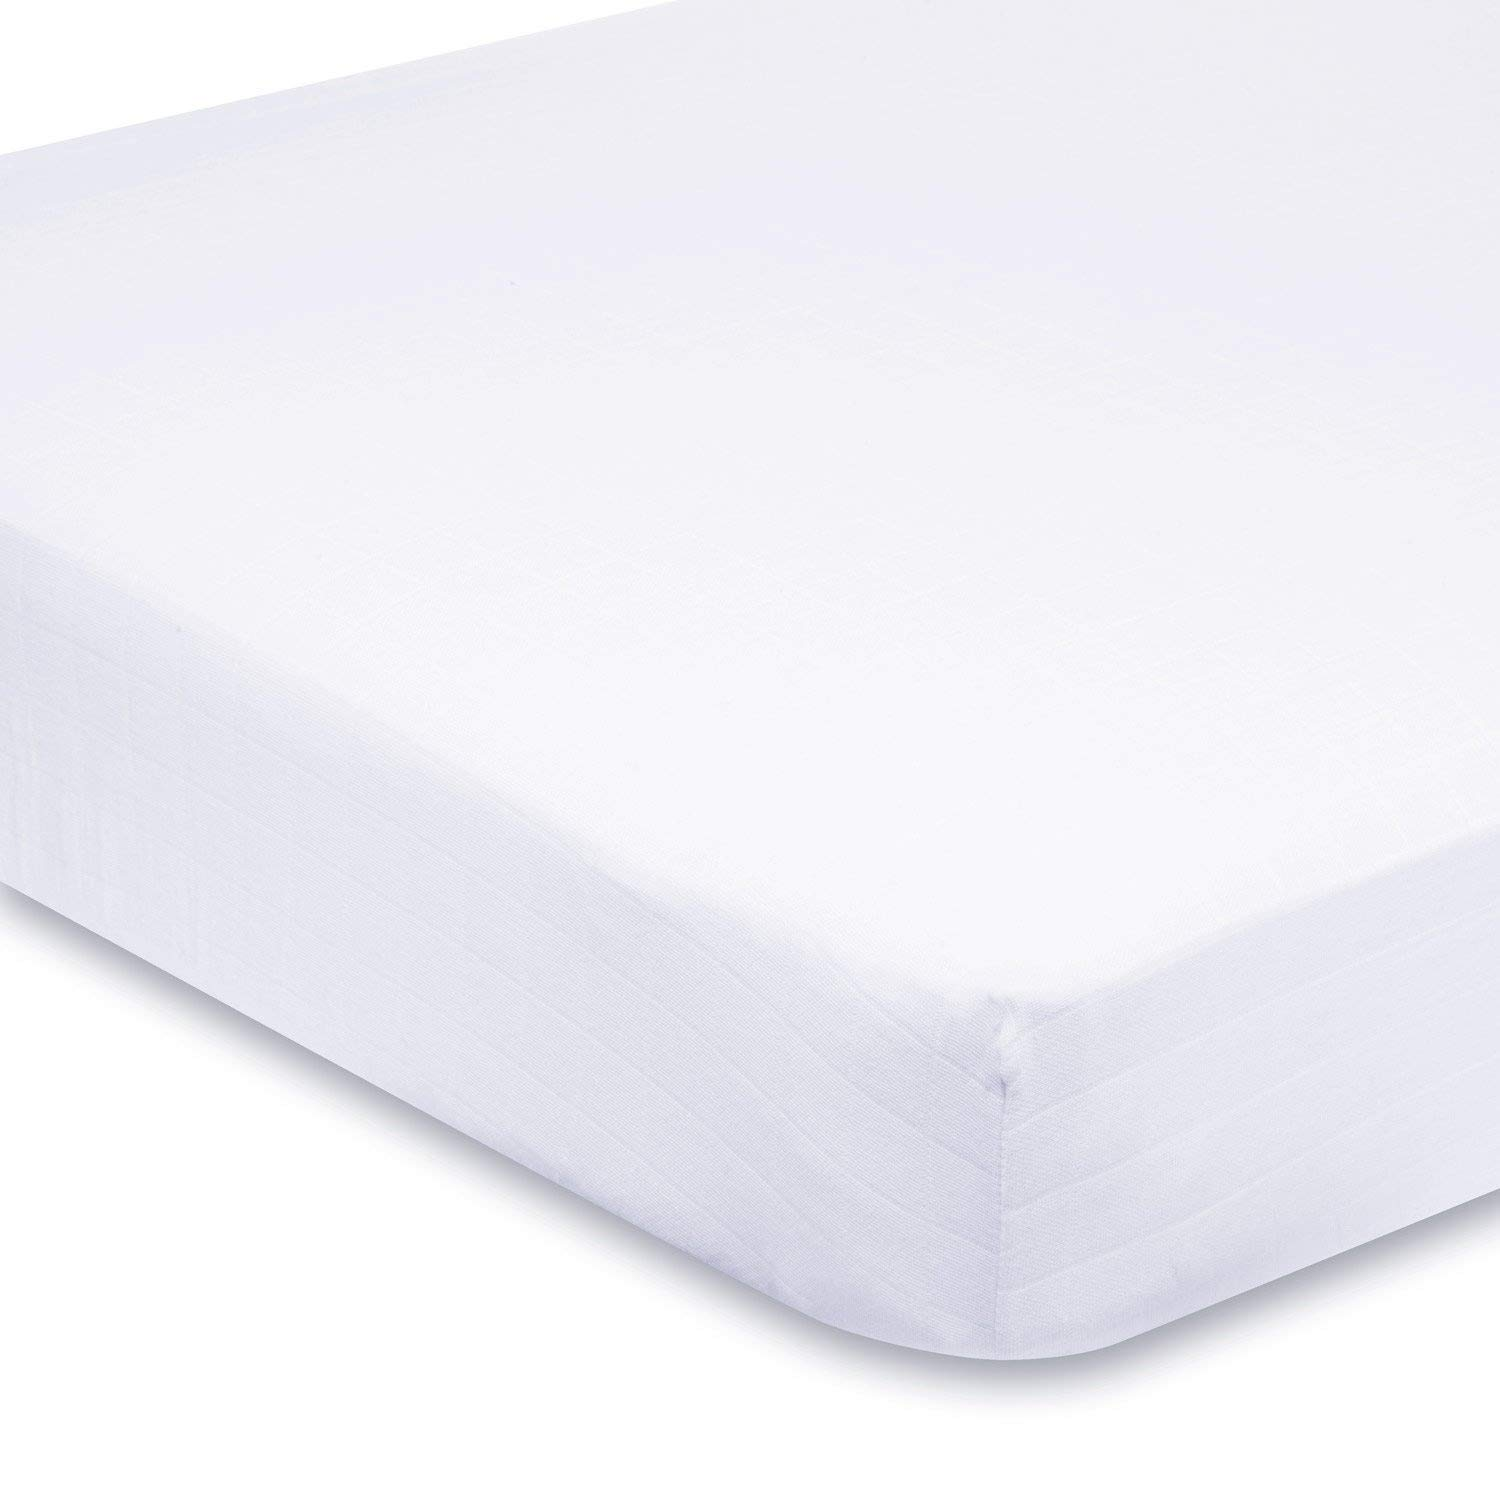 SRP Linen - 400 Thread Count 100% Egyptian Cotton 10' Deep Pocket 1 PC Fitted Sheet, King Size, Solid White SRP Linen Mercantile Pvt. Ltd.